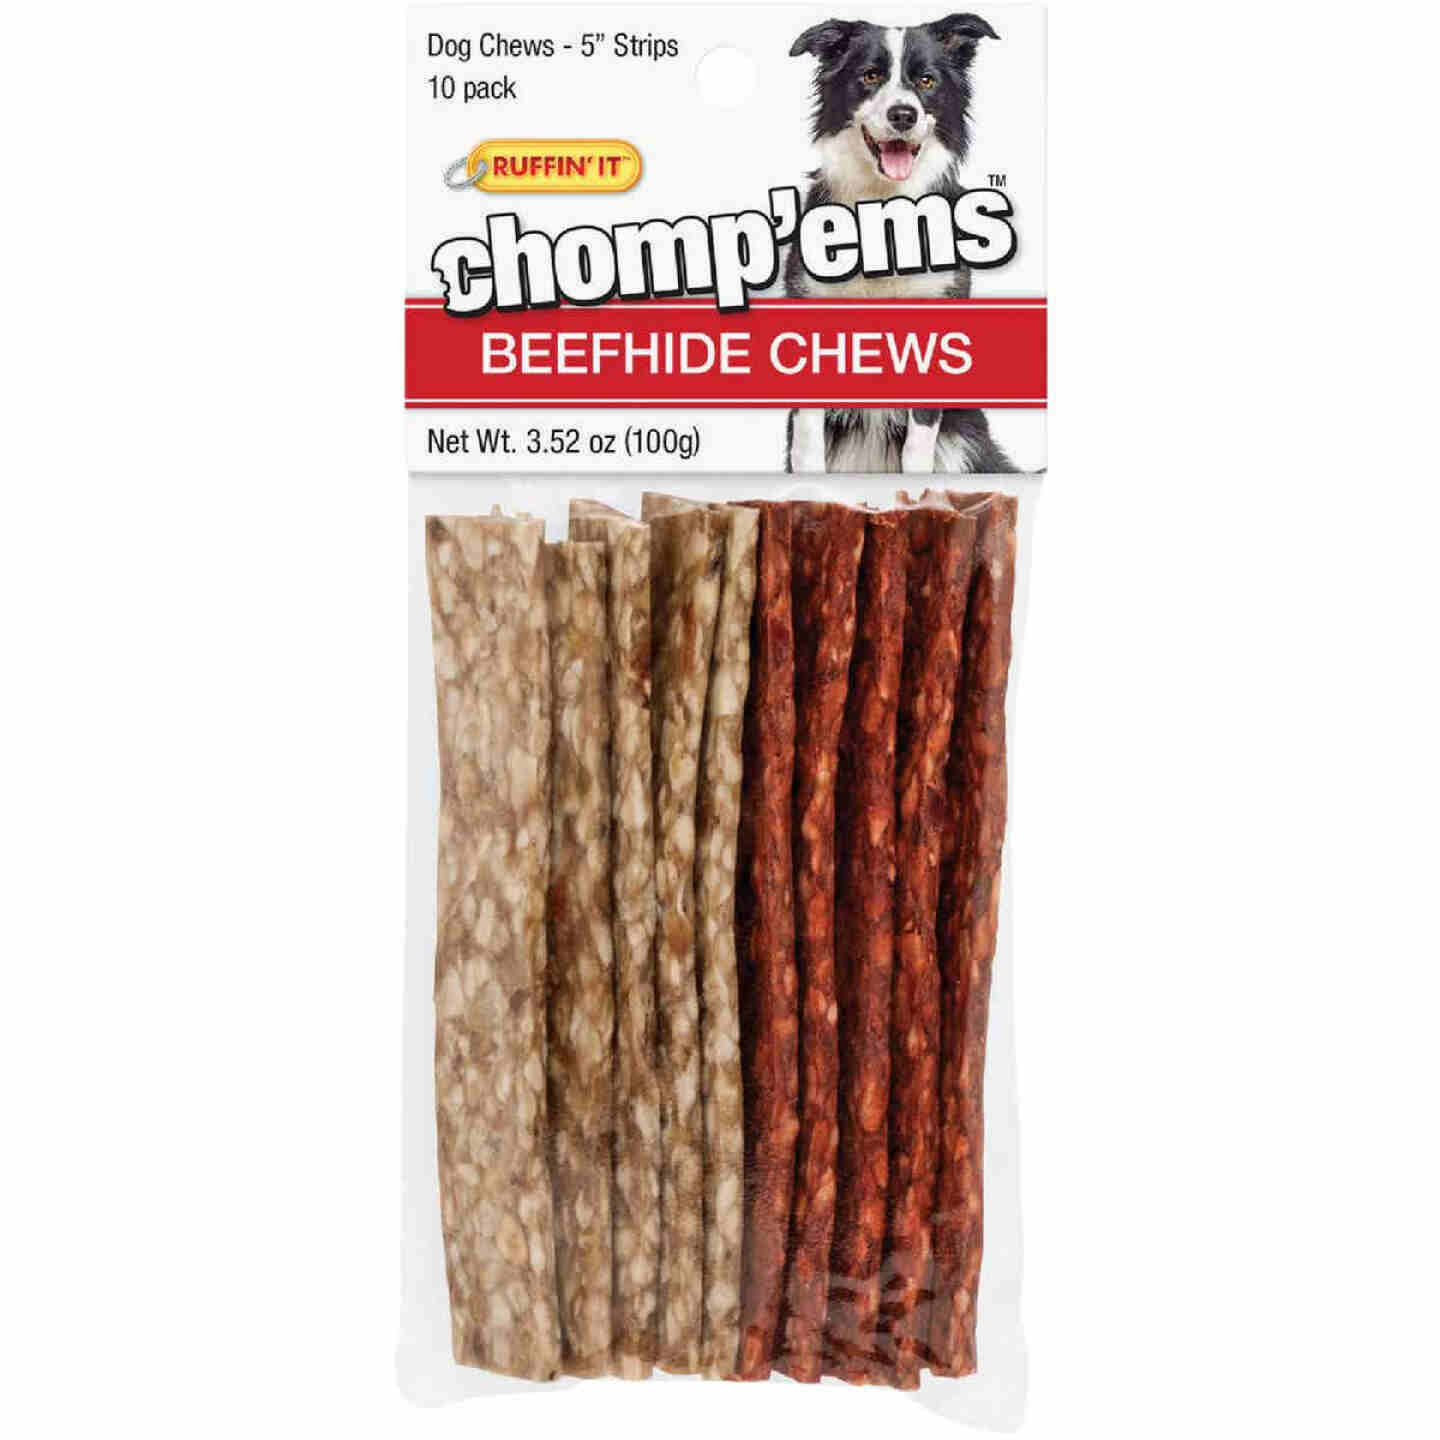 Westminster Pet Ruffin' it Chomp'ems Beef Strip 5 In. Beefhide Chew, (10-Pack) Image 1